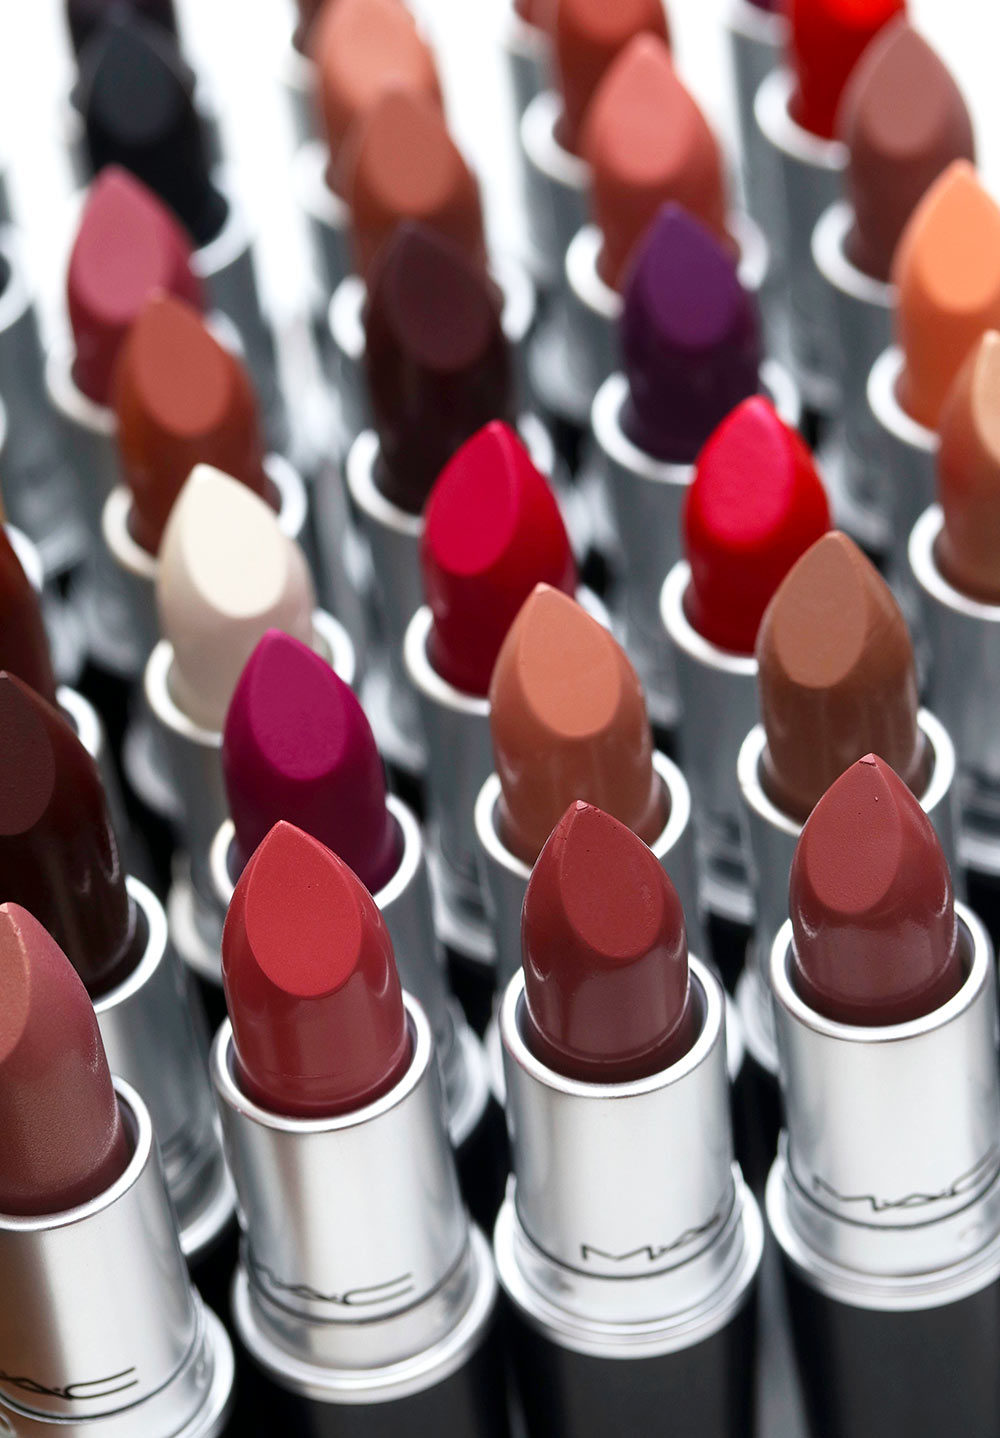 mac lipsticks national lipstick day